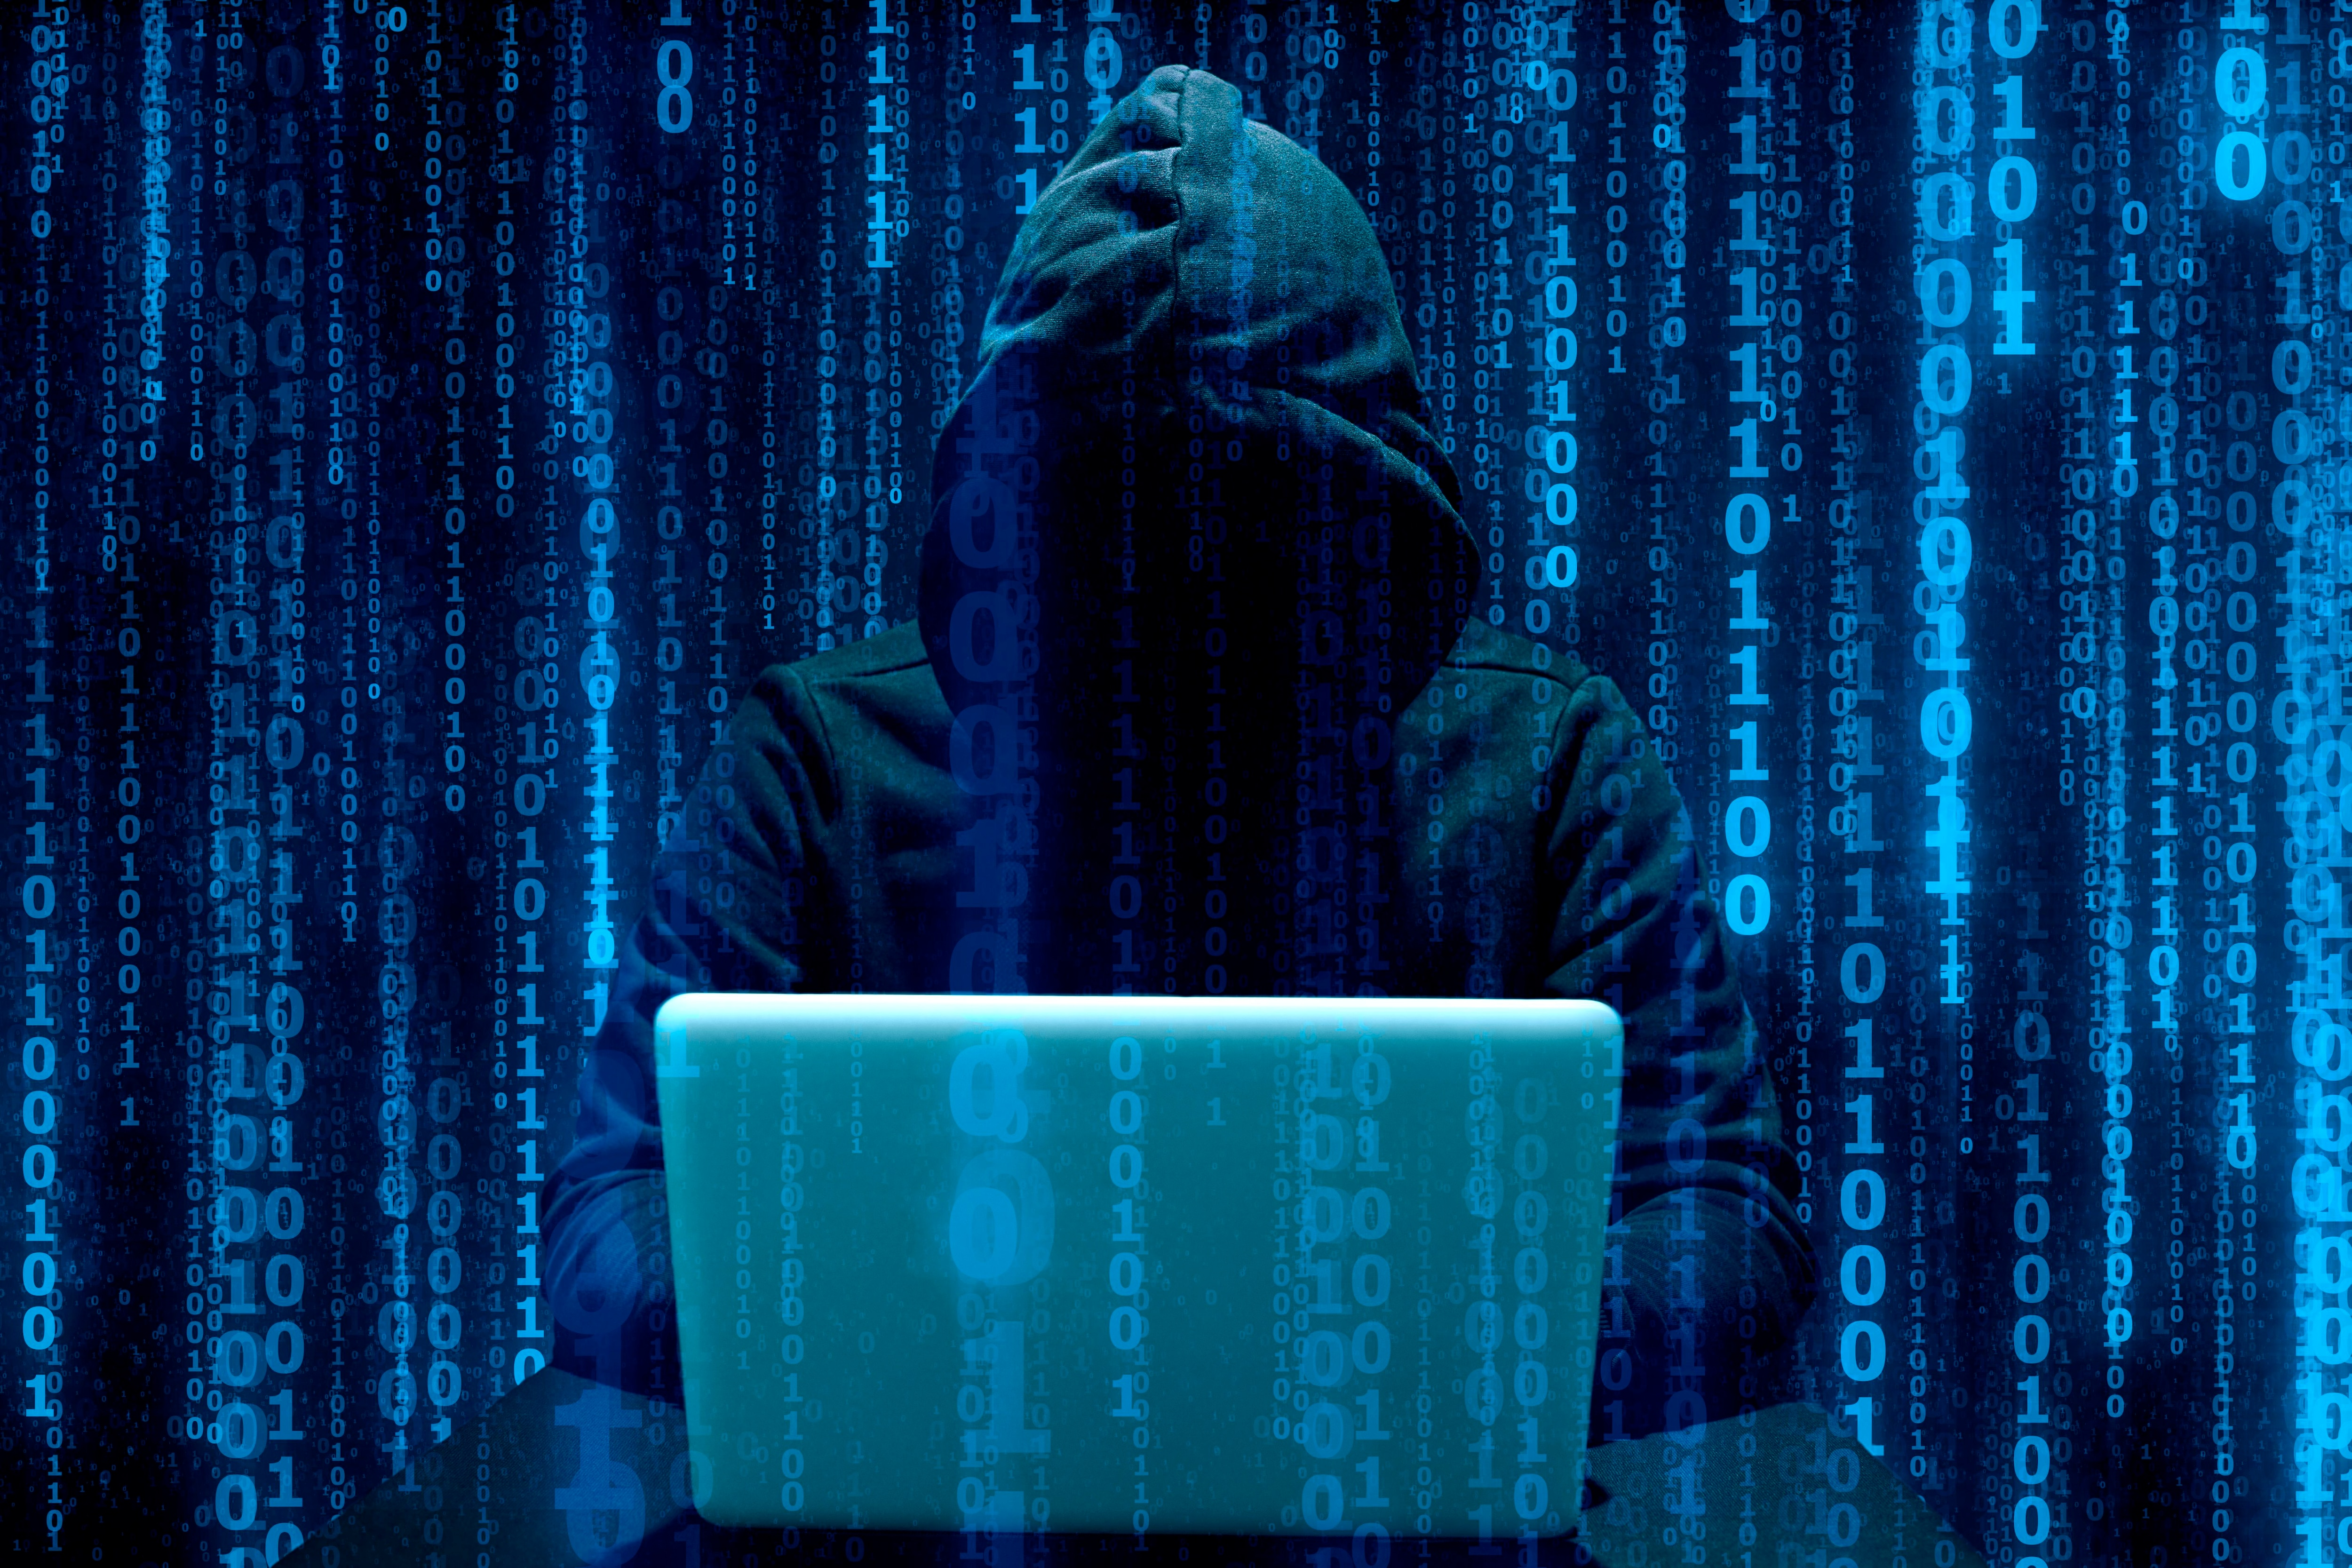 Canadian industry regulator requires investment companies to report cybersecurity attacks